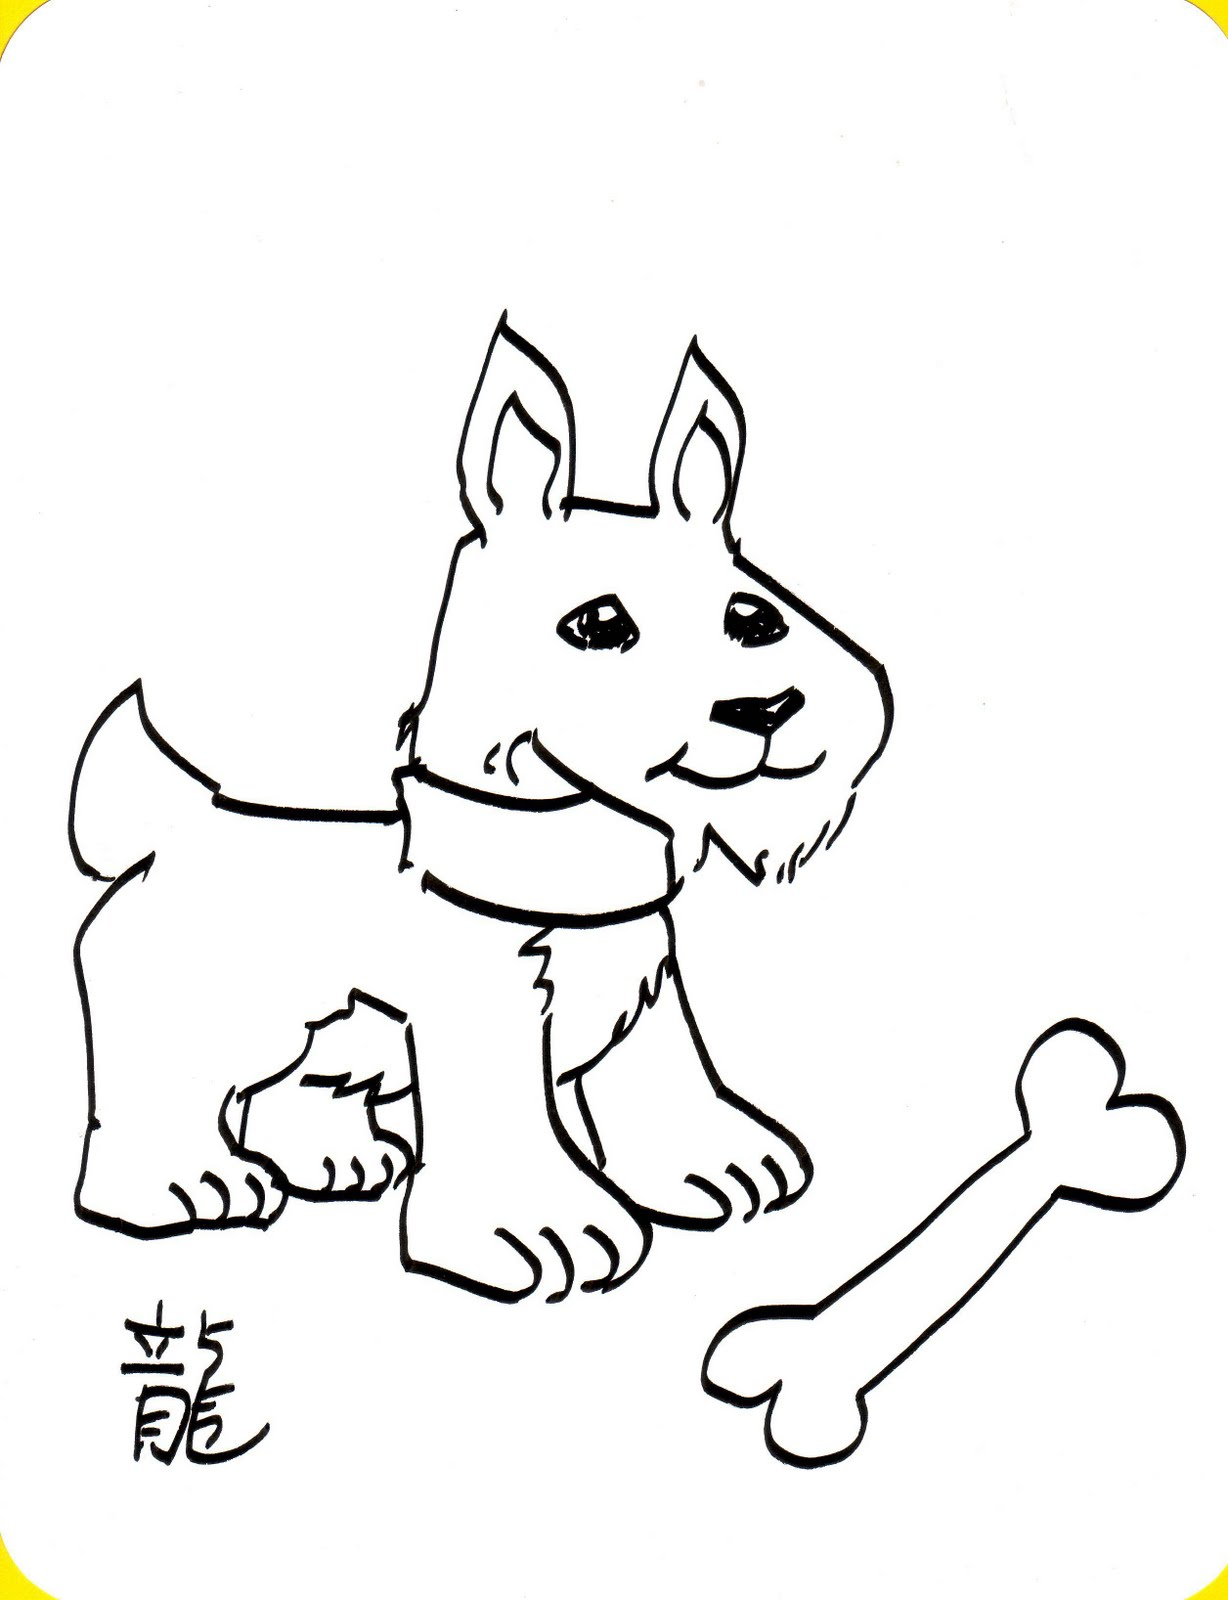 Kid Sketches: Coloring templates for upcoming classes at